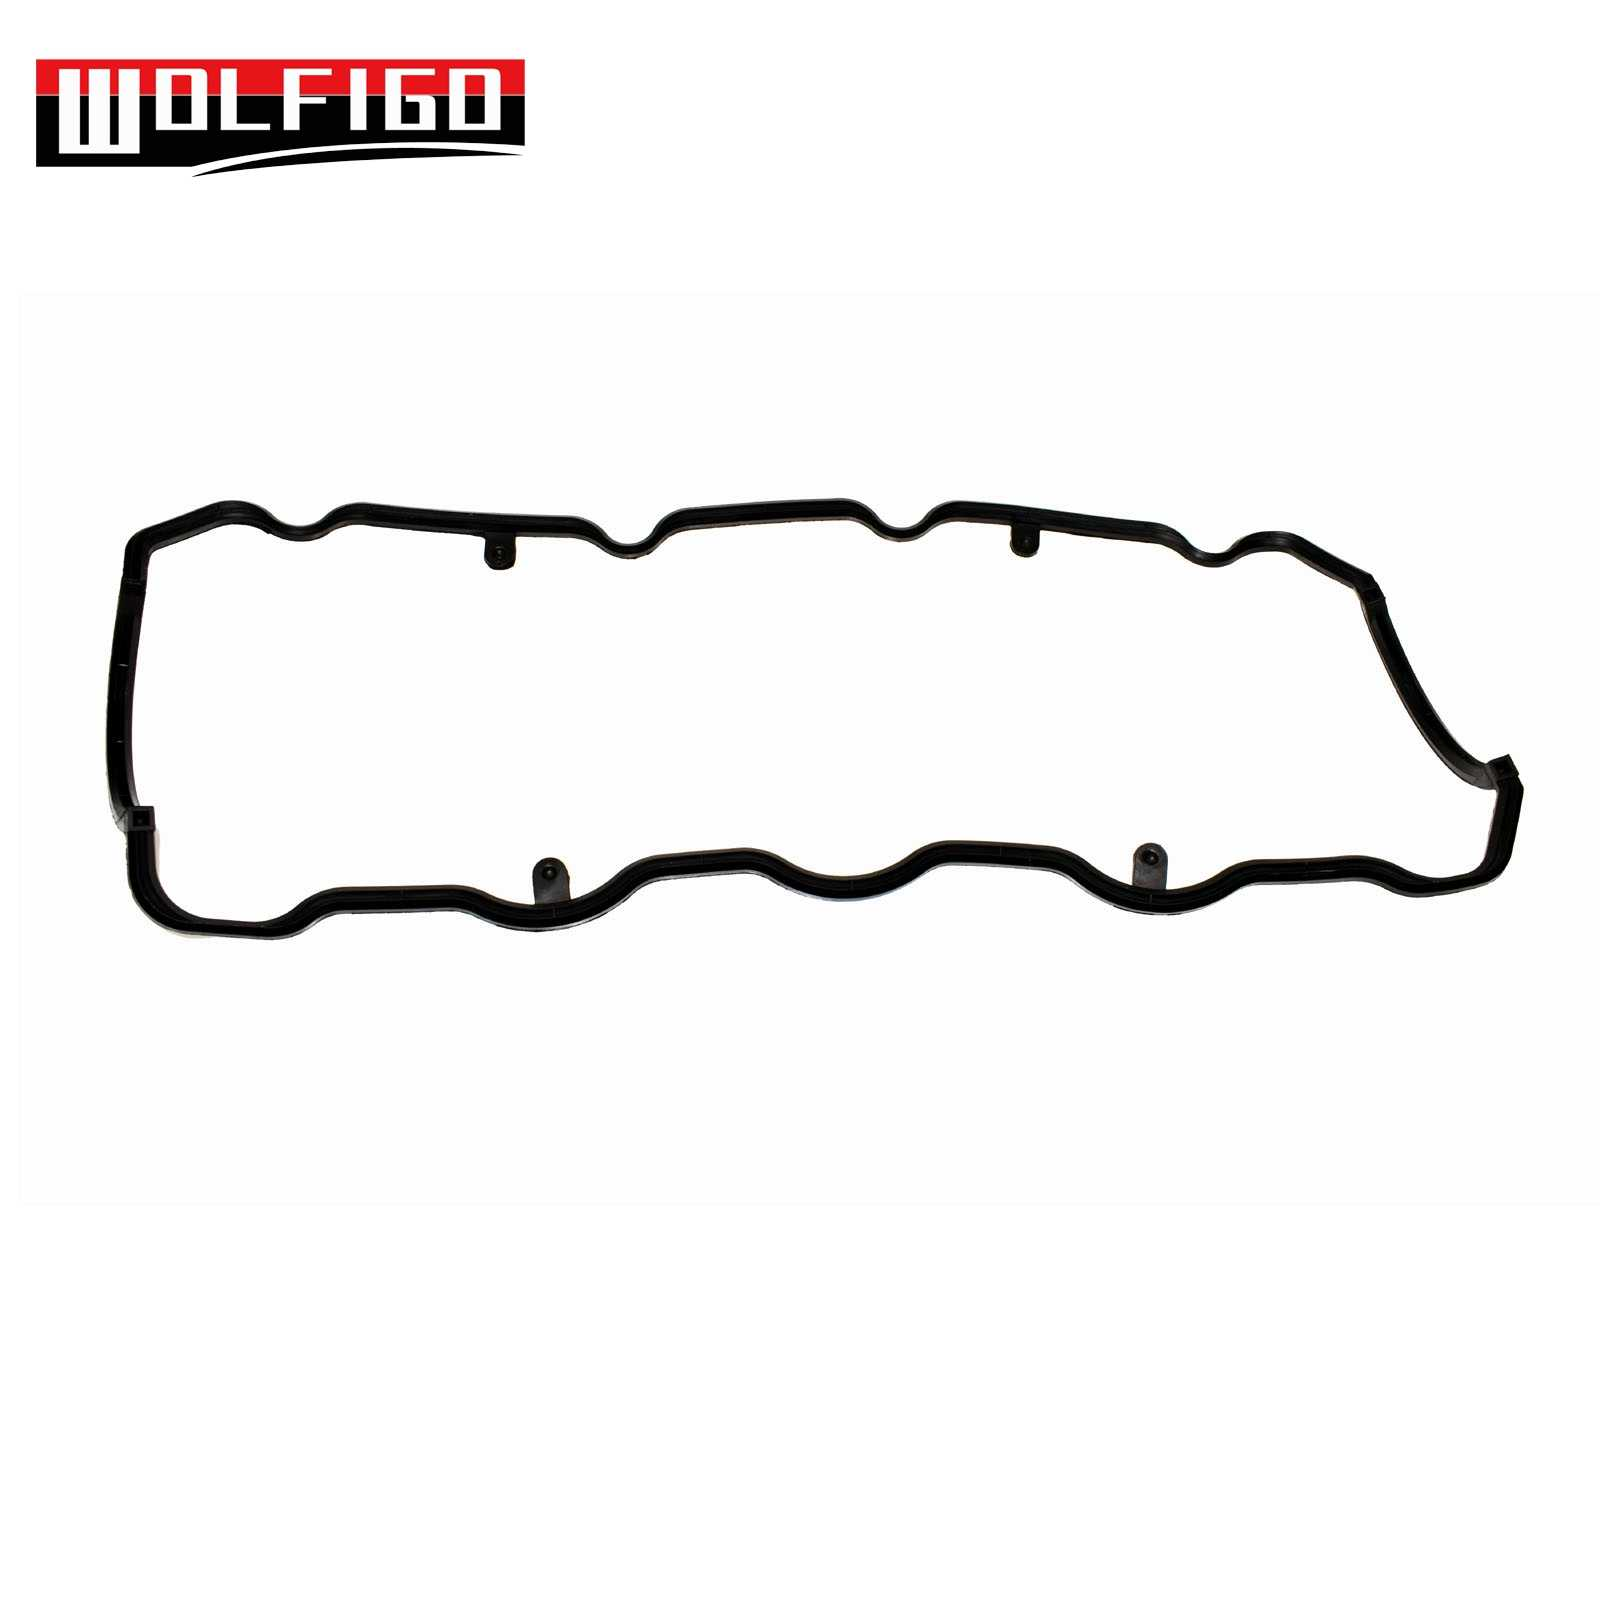 hight resolution of wolfigo for vw beetle golf jetta tdi 1 9 engine valve cover gasket 038103469e 038 103